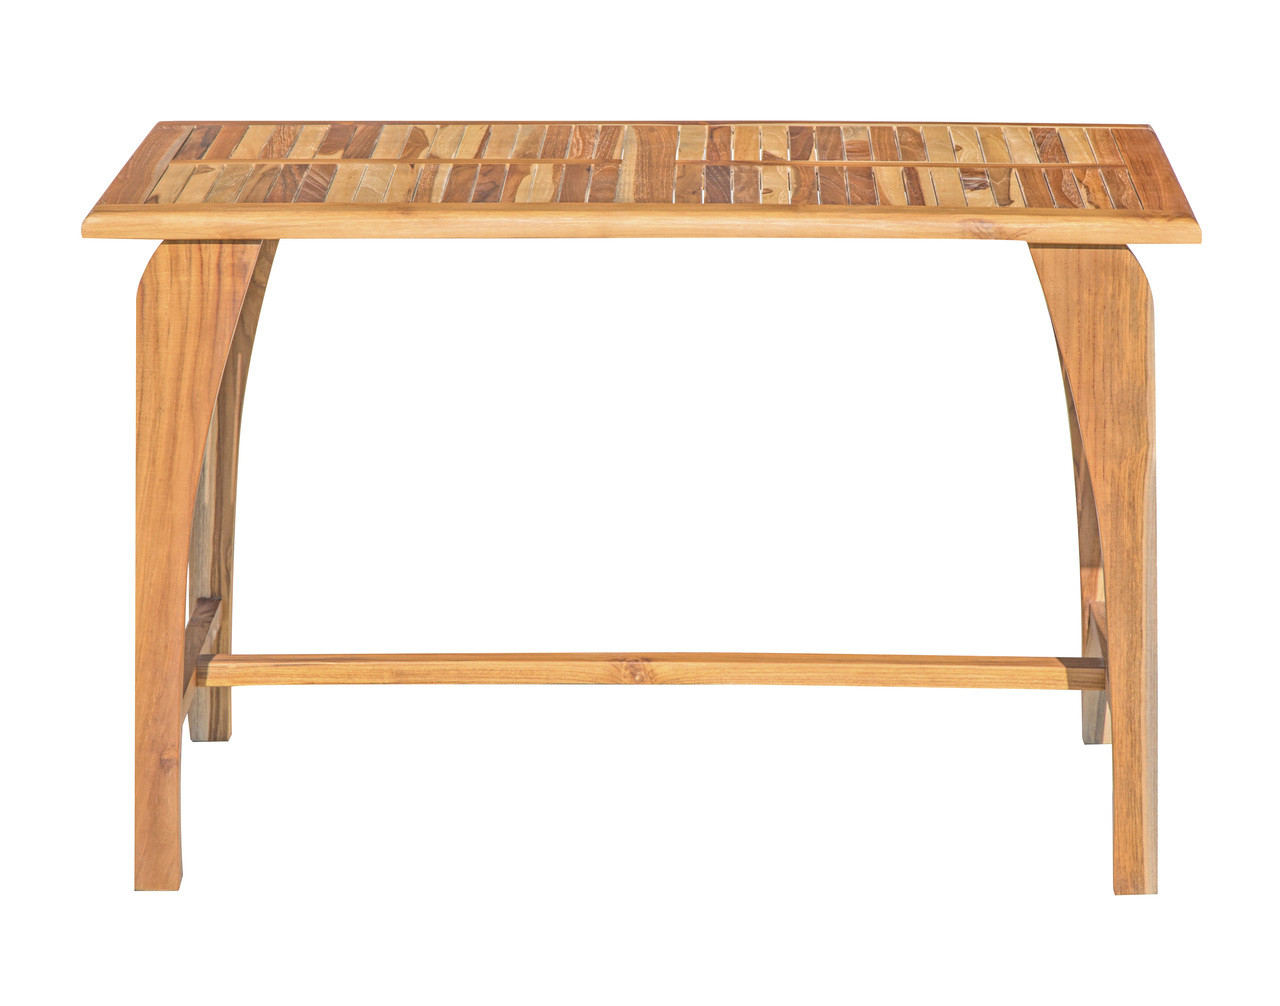 """EcoDecors Tranquility 47.25"""" x """"27.5"""" x """"30"""" Teak Wood Table in EarthyTeak Finish"""